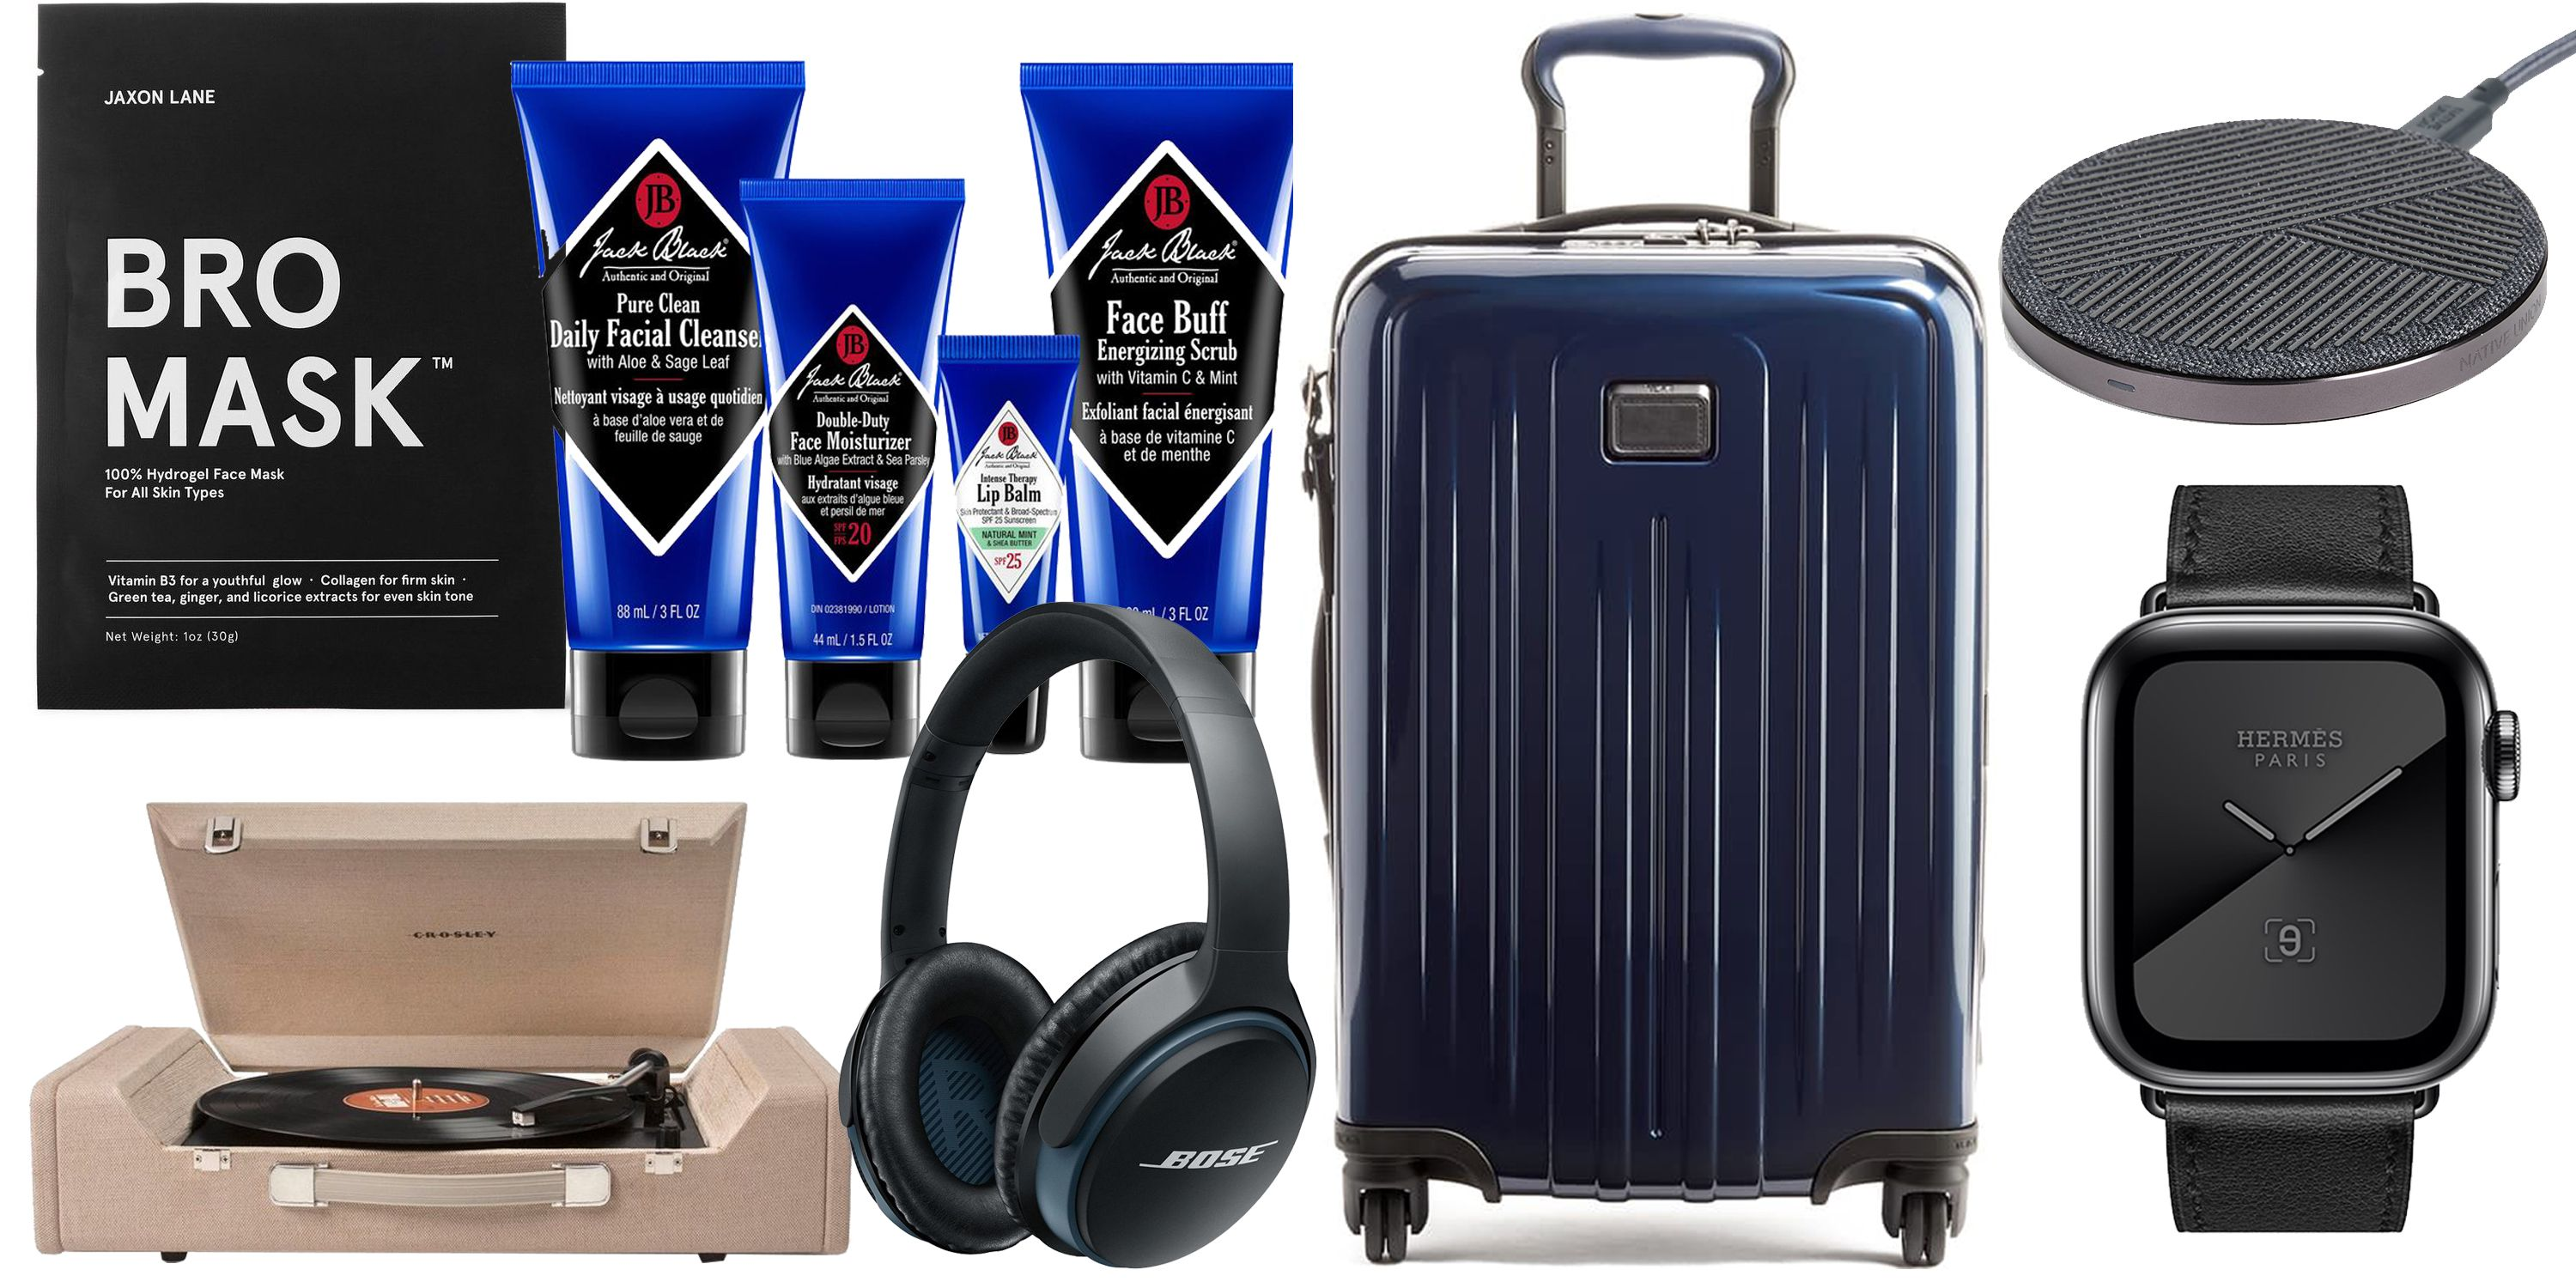 40 Holiday Gift Ideas for Men Who Are Difficult to Shop For